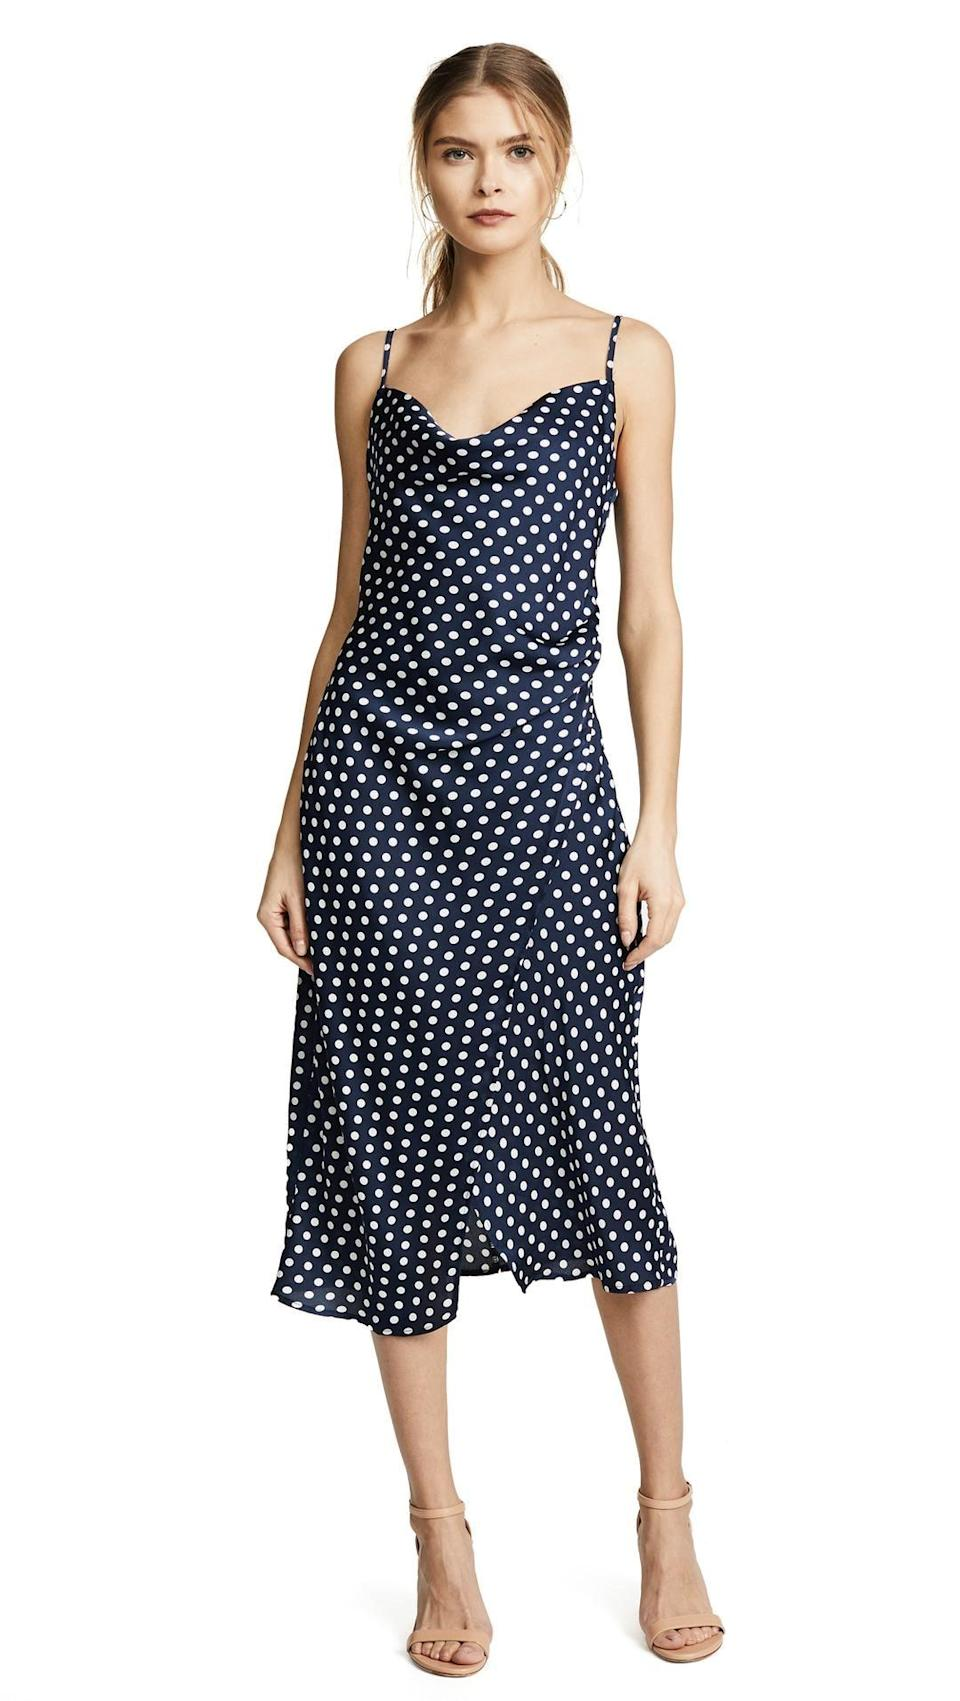 It's a polka-dot party. Available in size S to L.